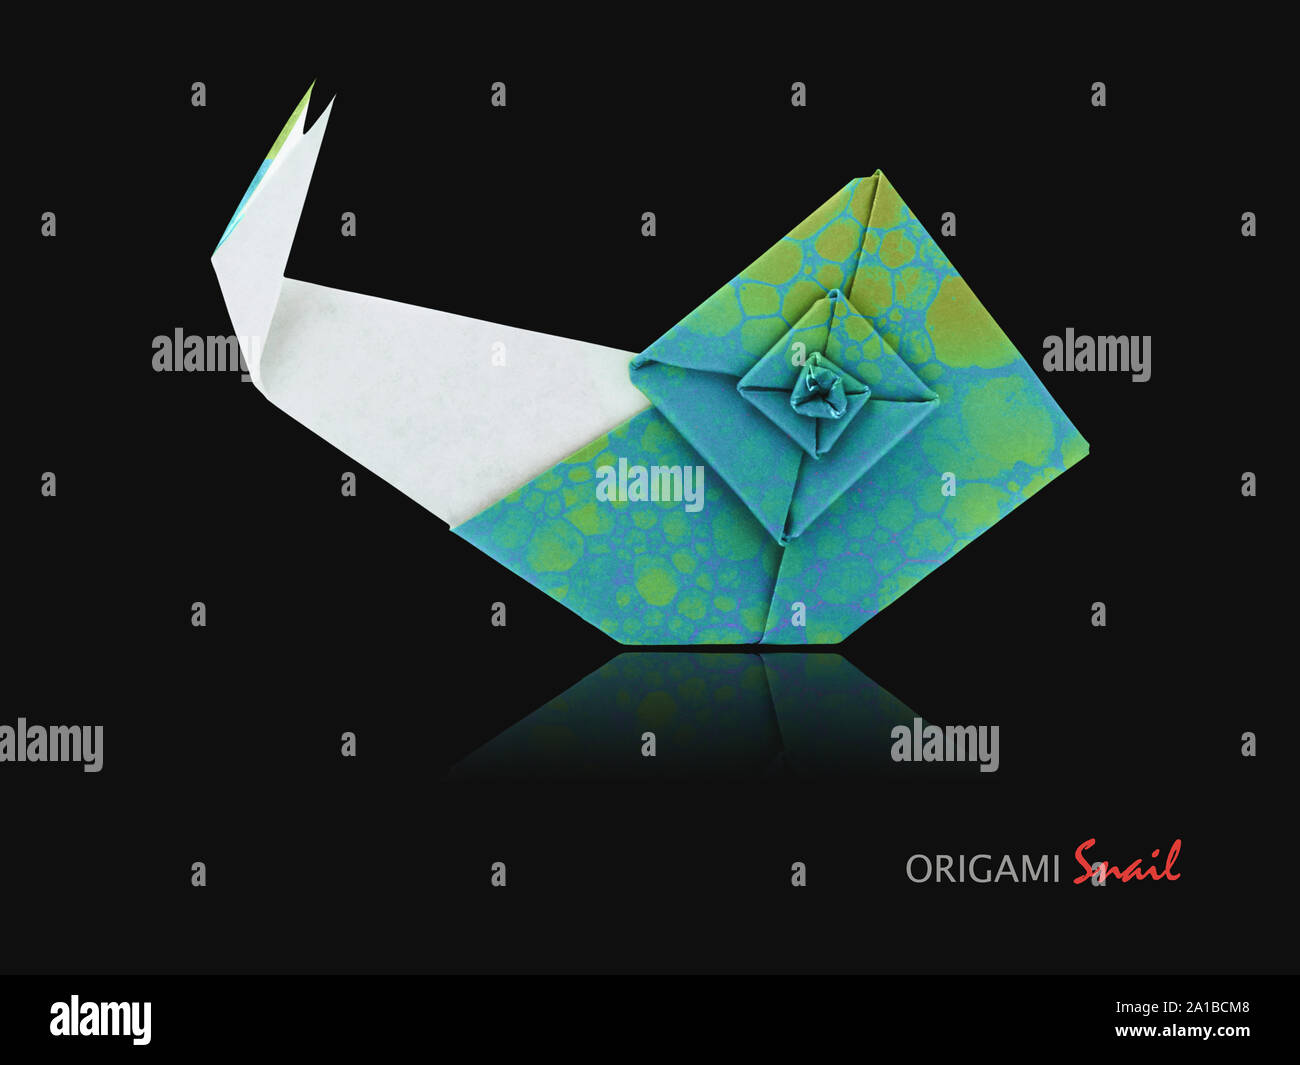 Origami Snail Tutorial & Quick Overview of 'The Origami Garden' by ... | 1065x1300